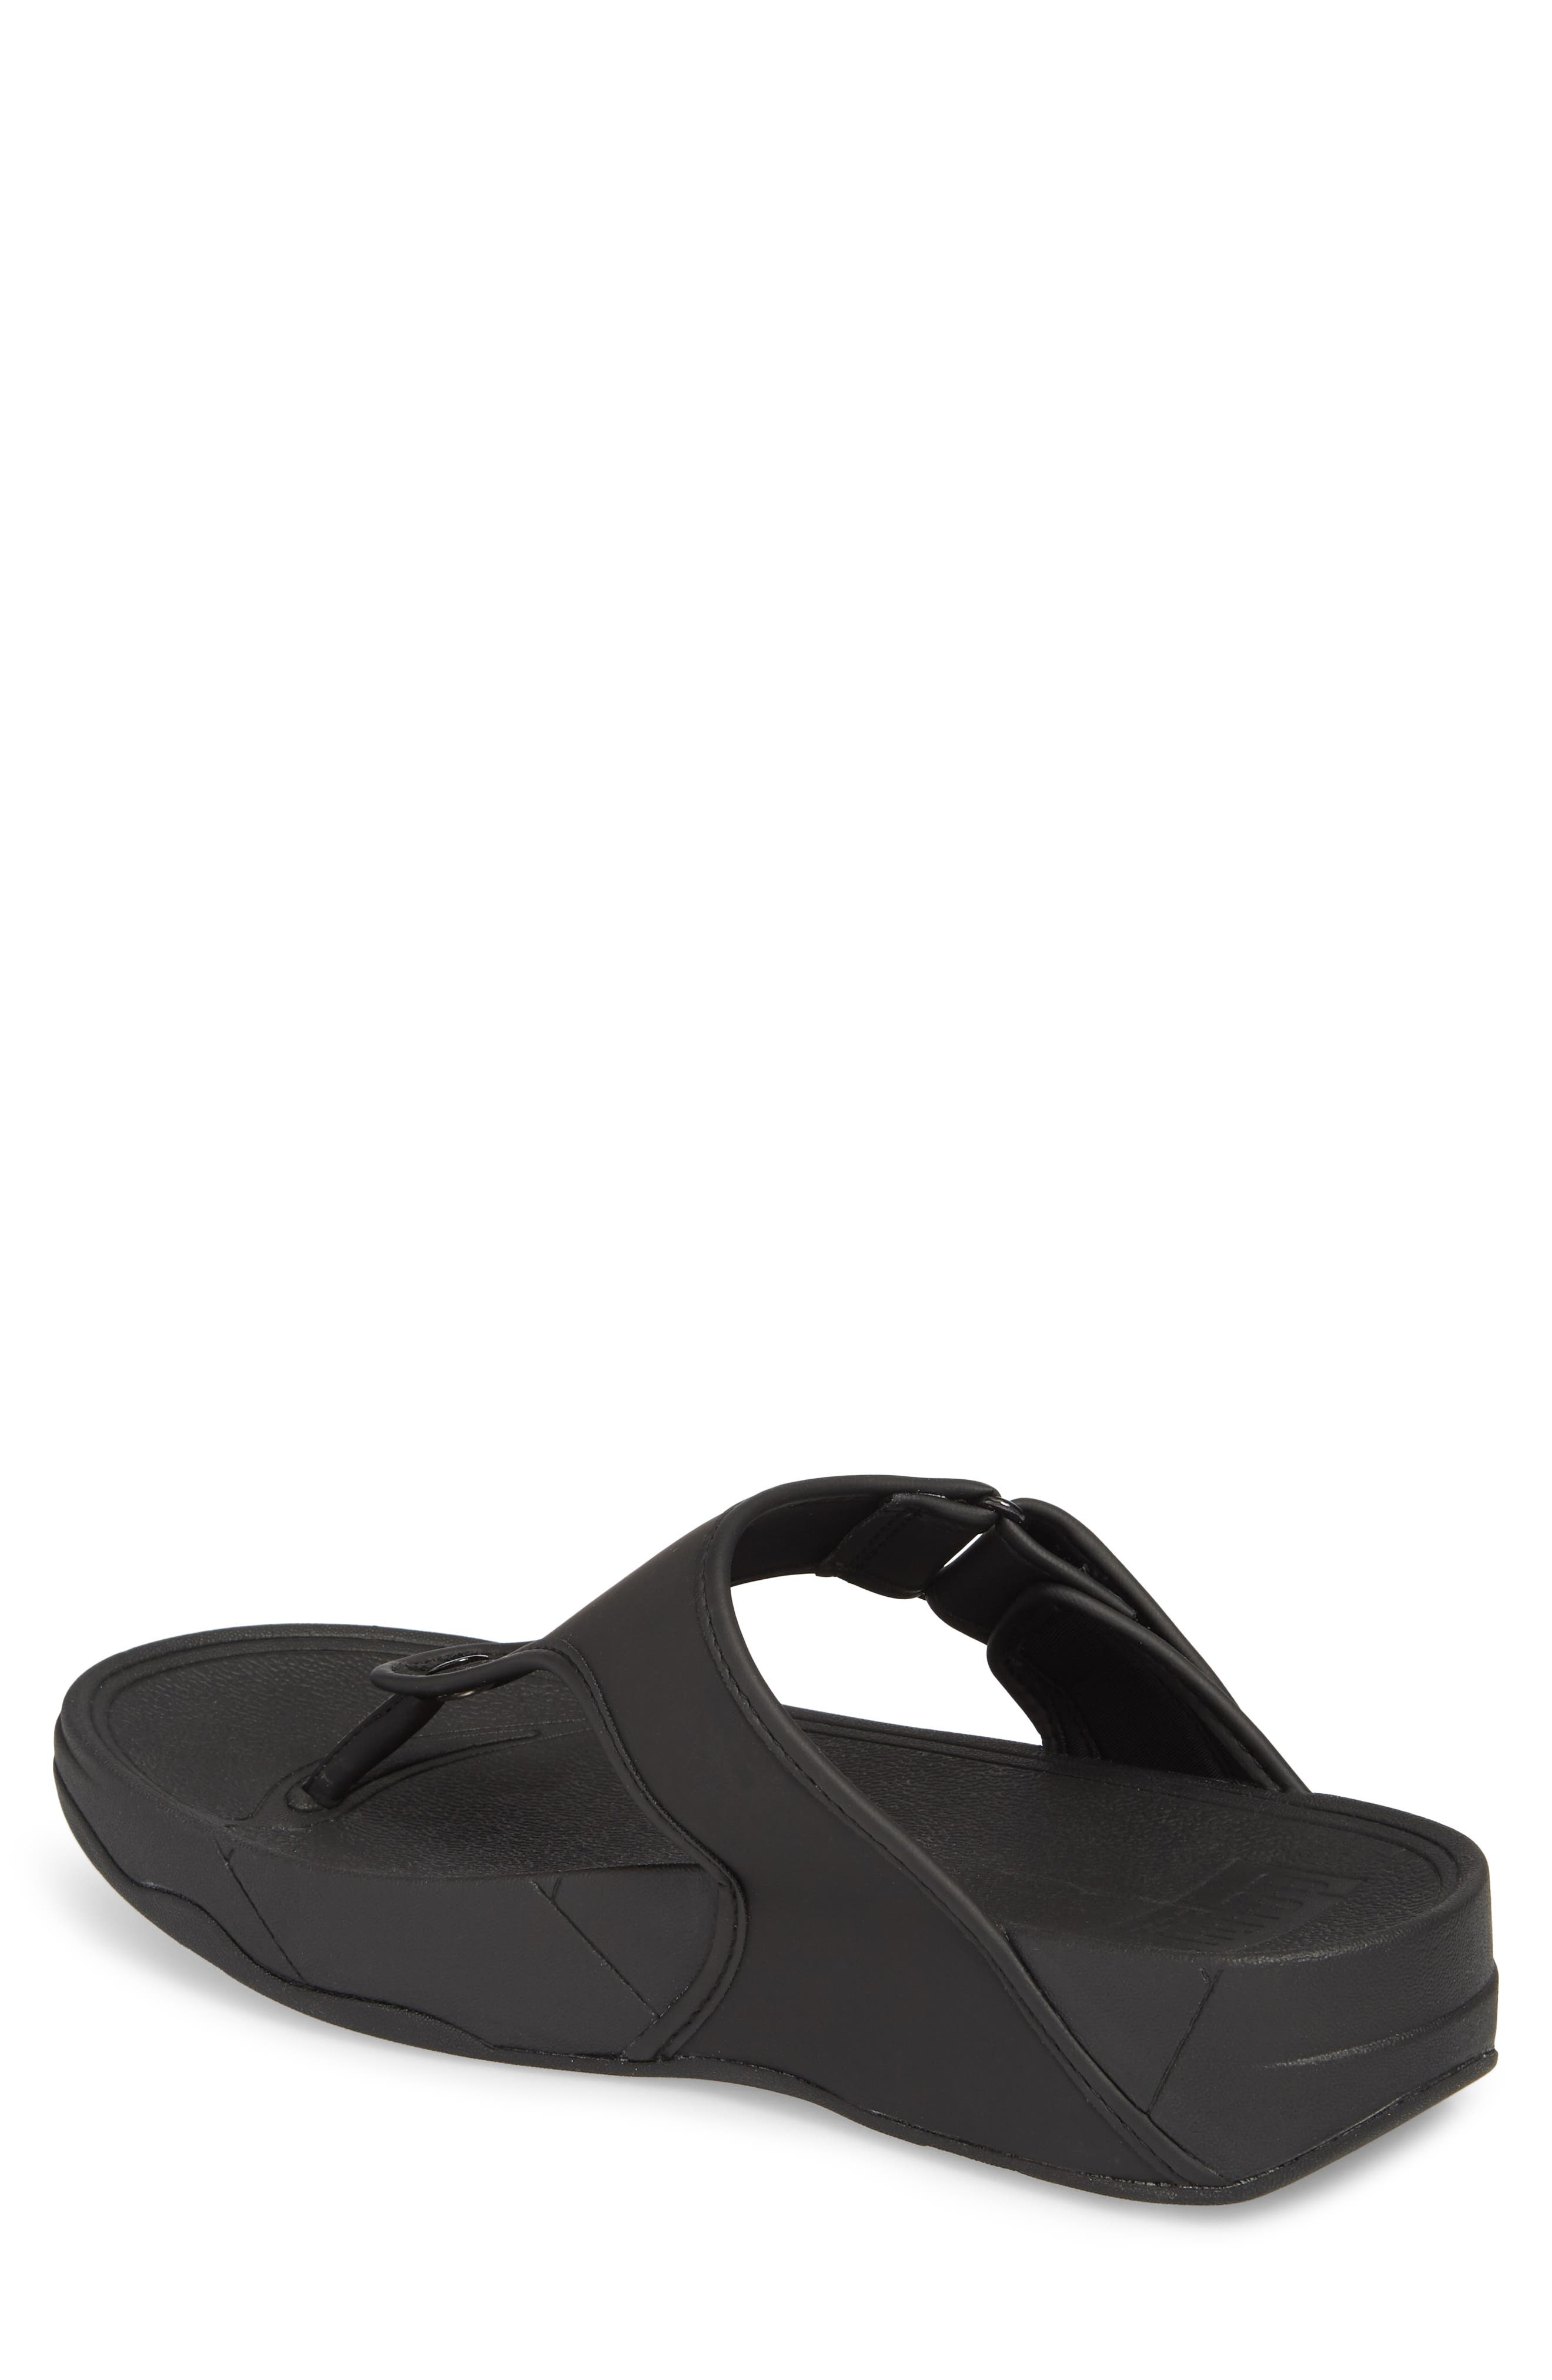 Trakk<sup>™</sup> II Sandal,                             Alternate thumbnail 2, color,                             Black Neoprene